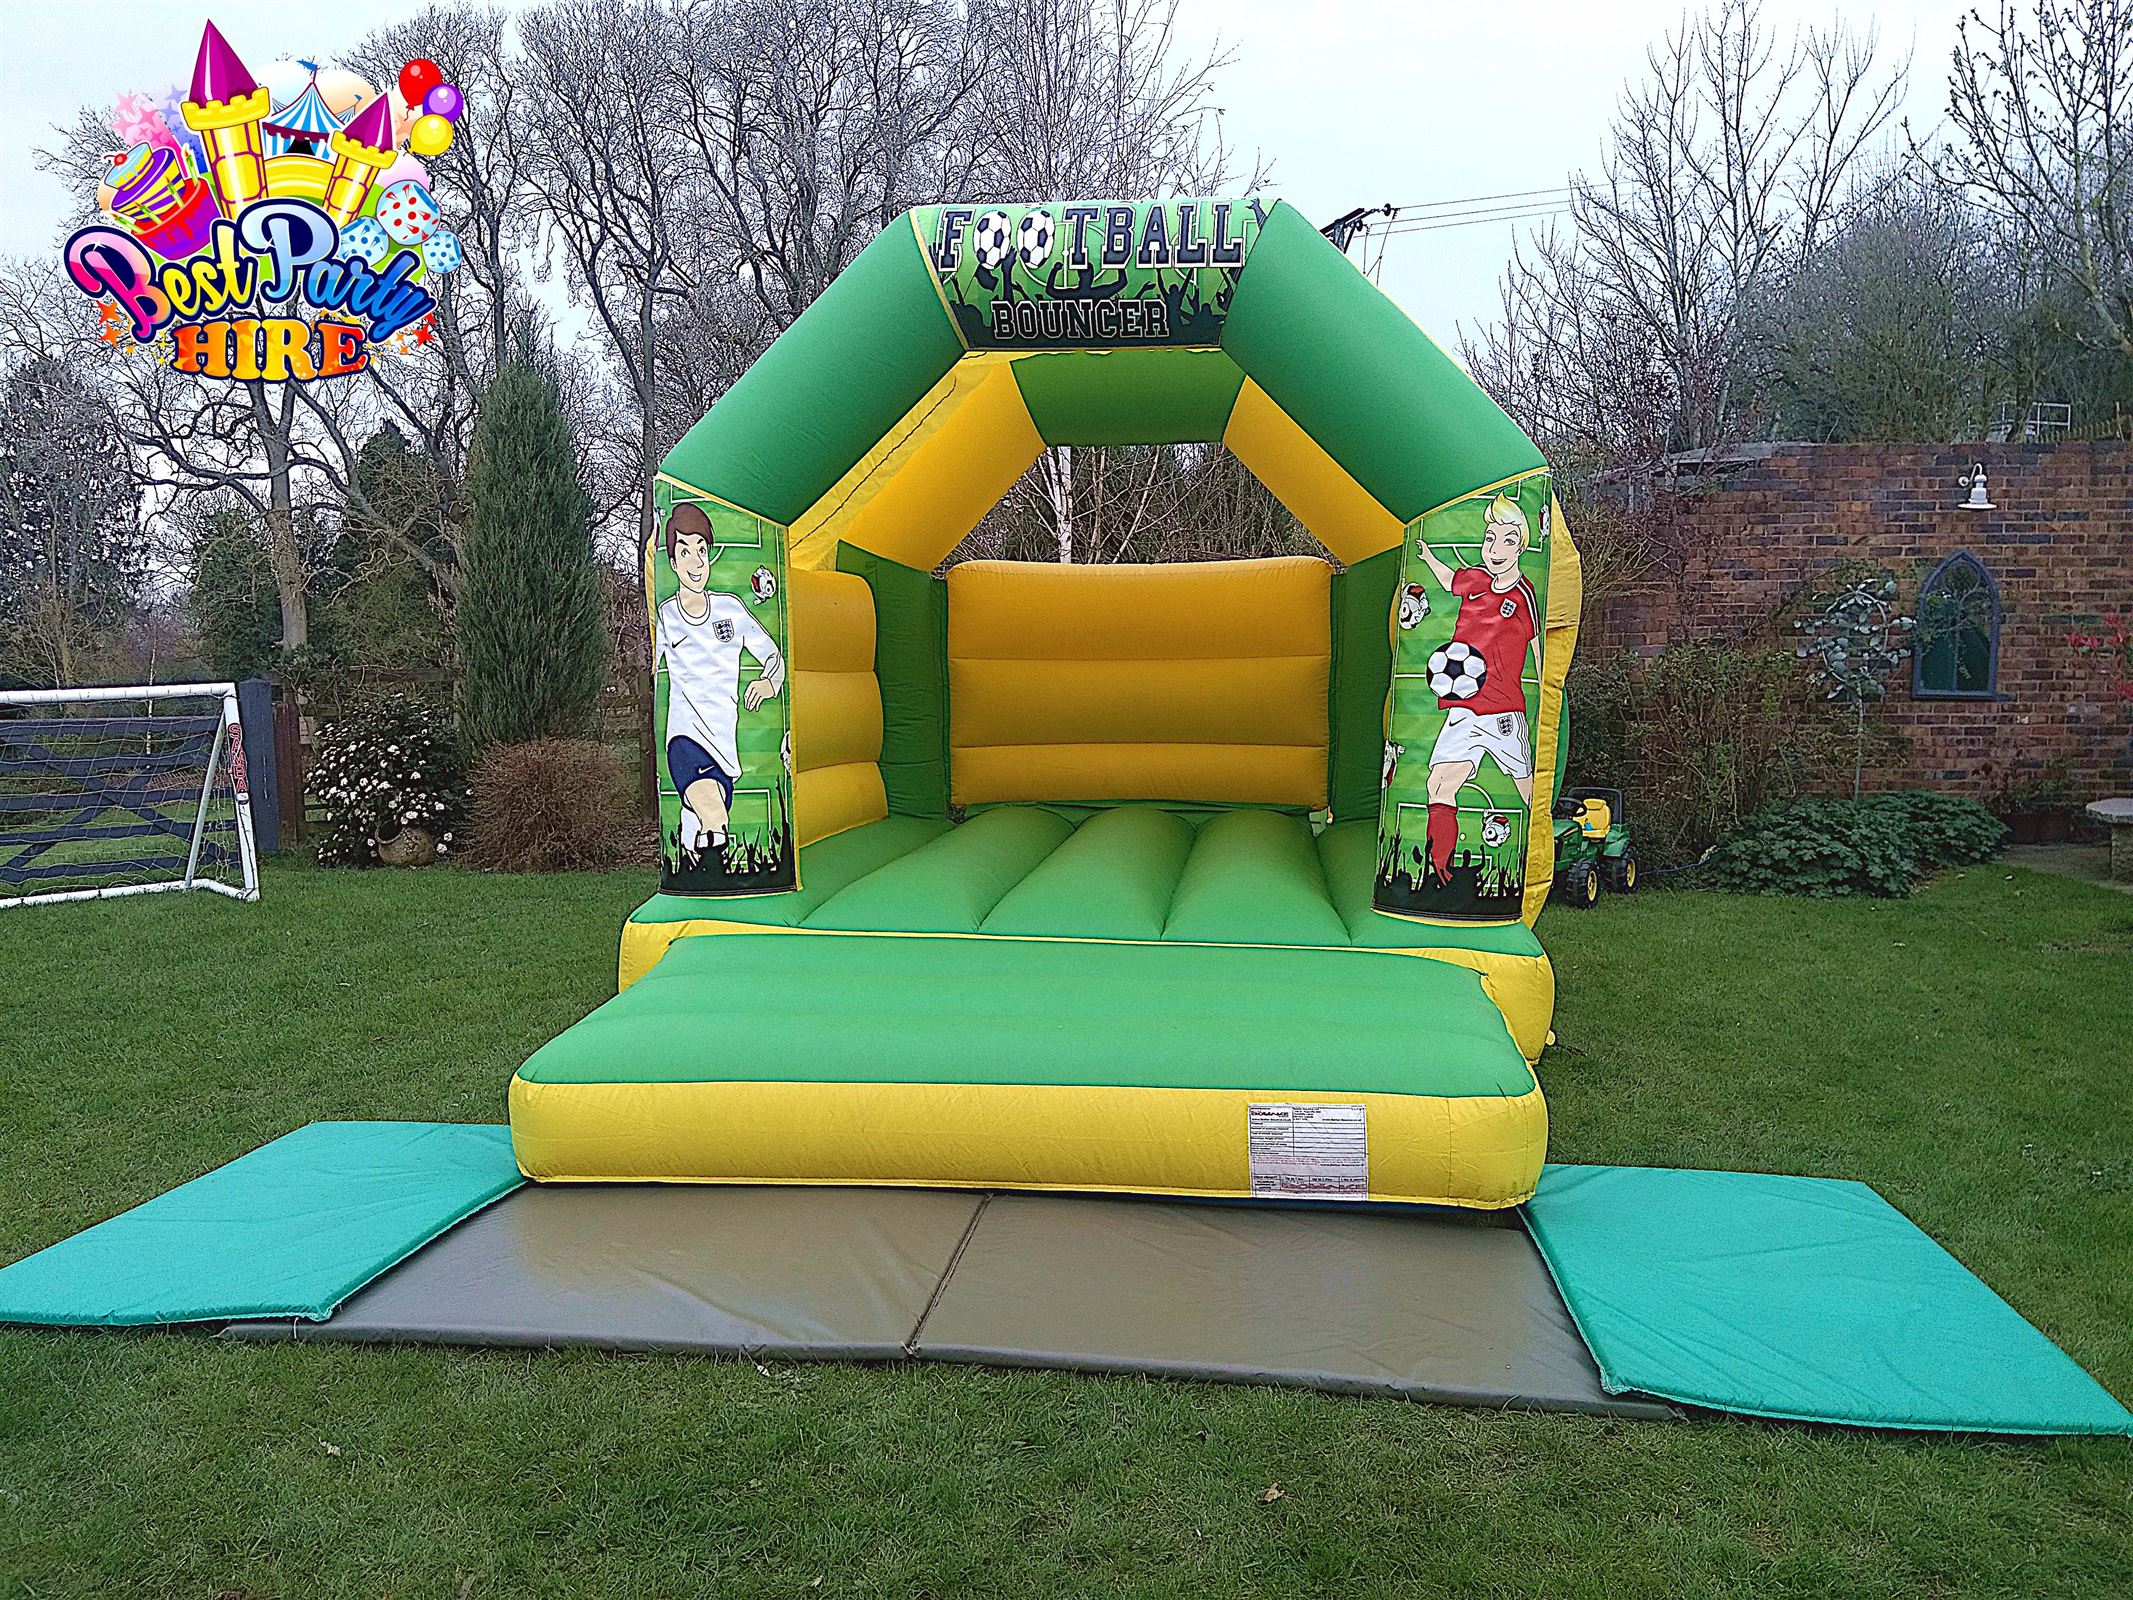 Bouncy Castle, Soft Play  in Leamington, Kenilworth, Warwick, Southam -  Best Party Hire